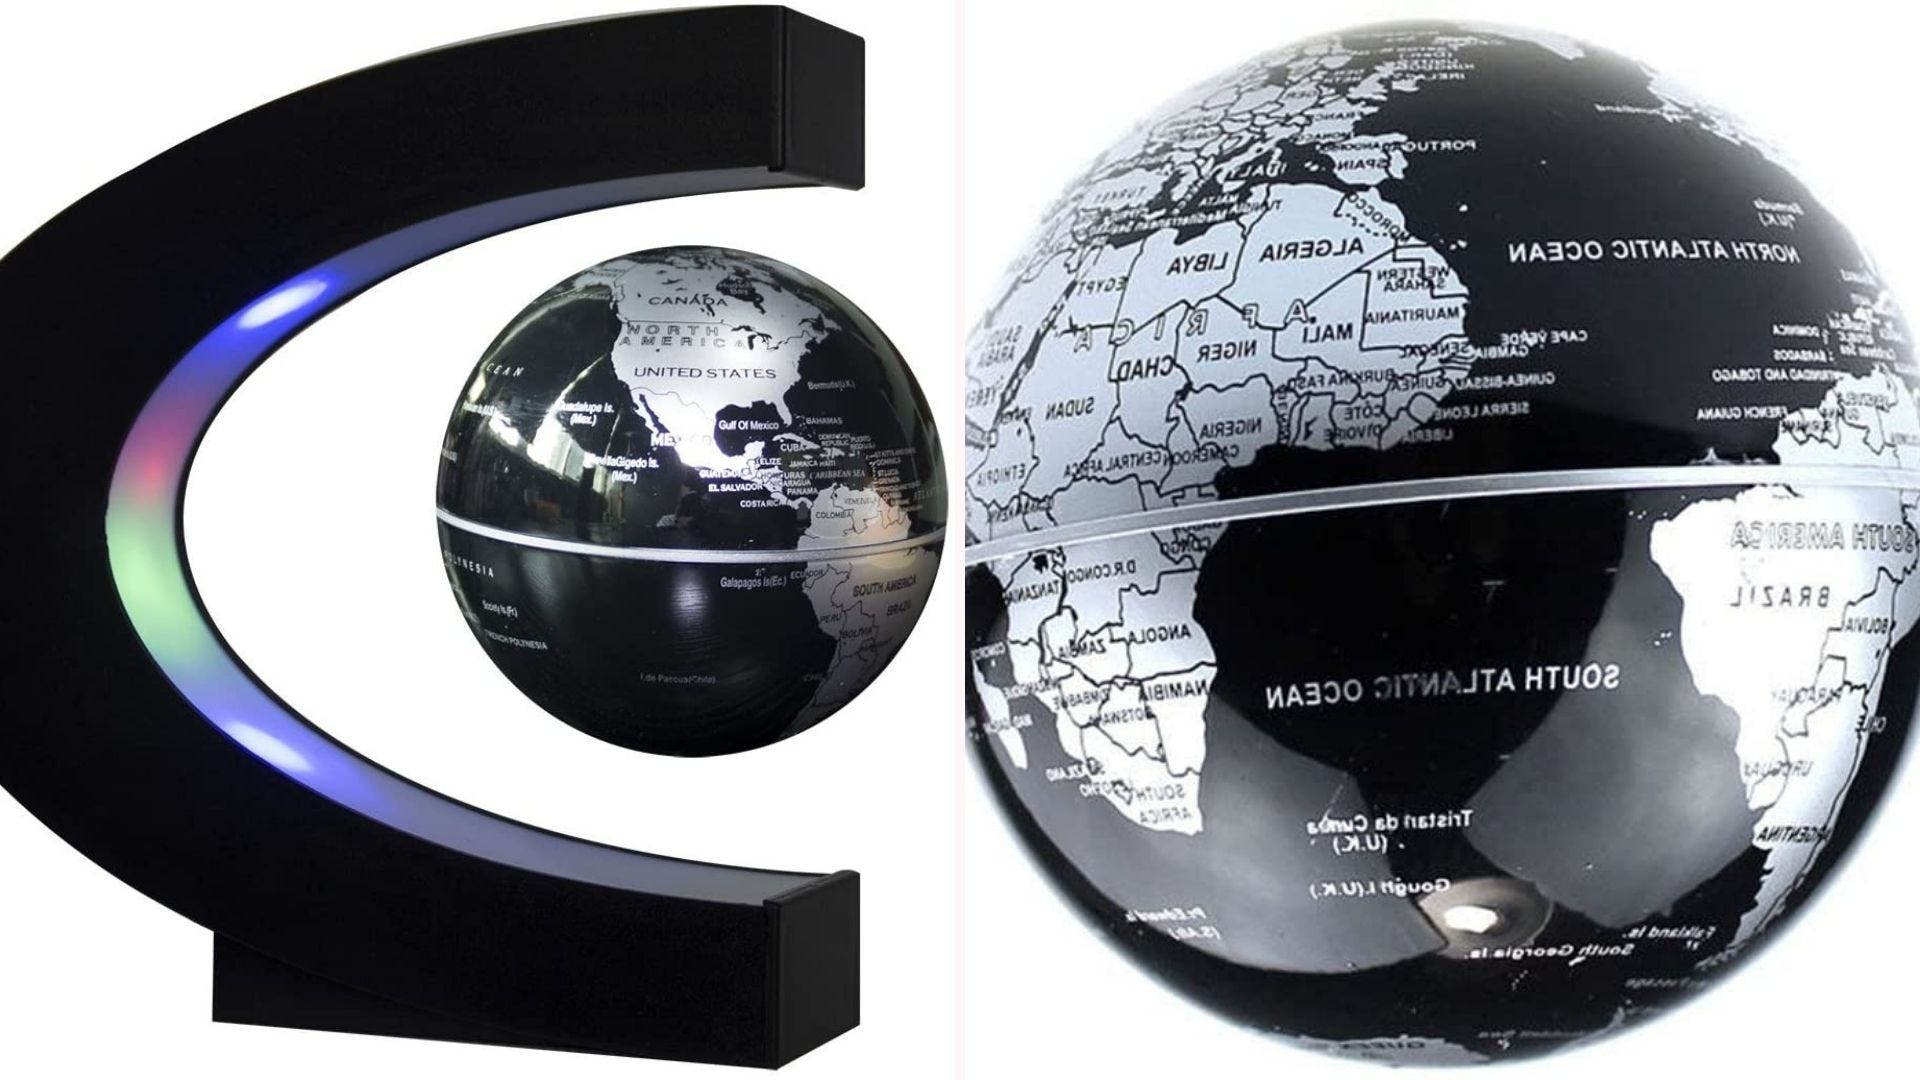 On the left, a black and silver miniature globe floats in the center of a magnetized C-frame, which is lined with multicolor LED lights. On the right, a closeup view of the globe depicts its metallic-look and detailed countries.